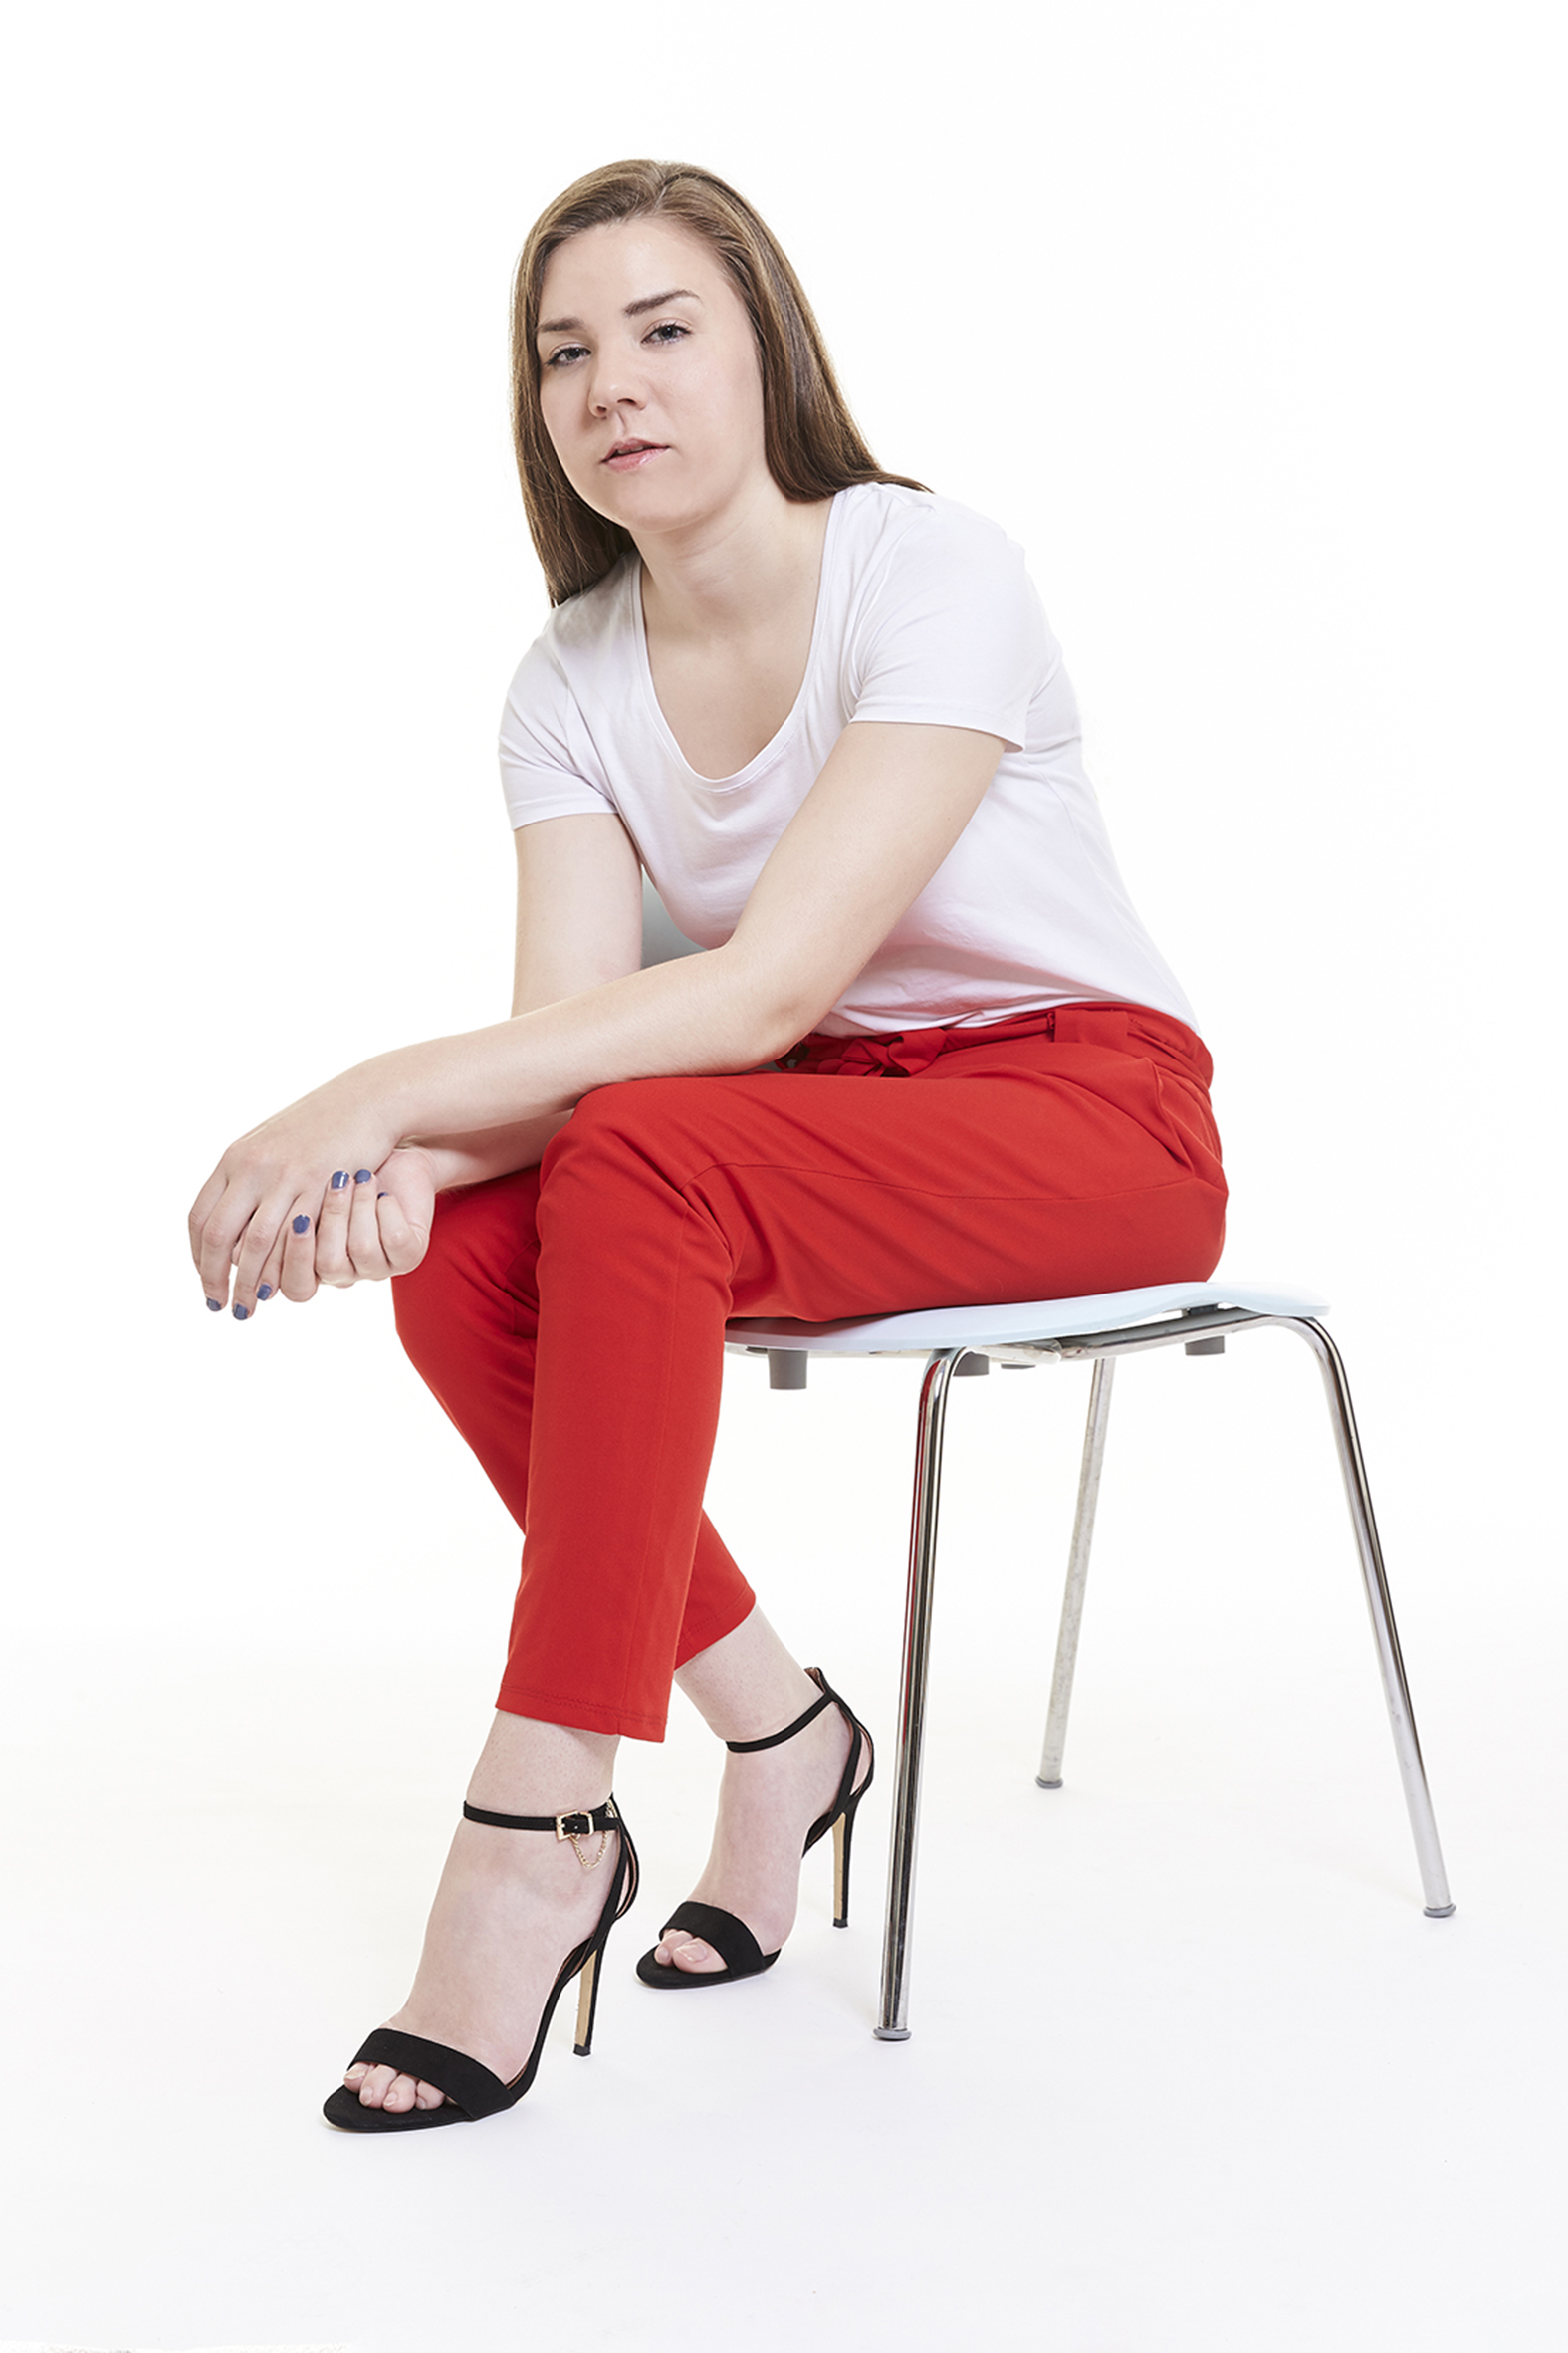 Ruth, Ehlers-Danlos Syndrome, Zebedee Management, disabled, model agency, disability, woman (11)